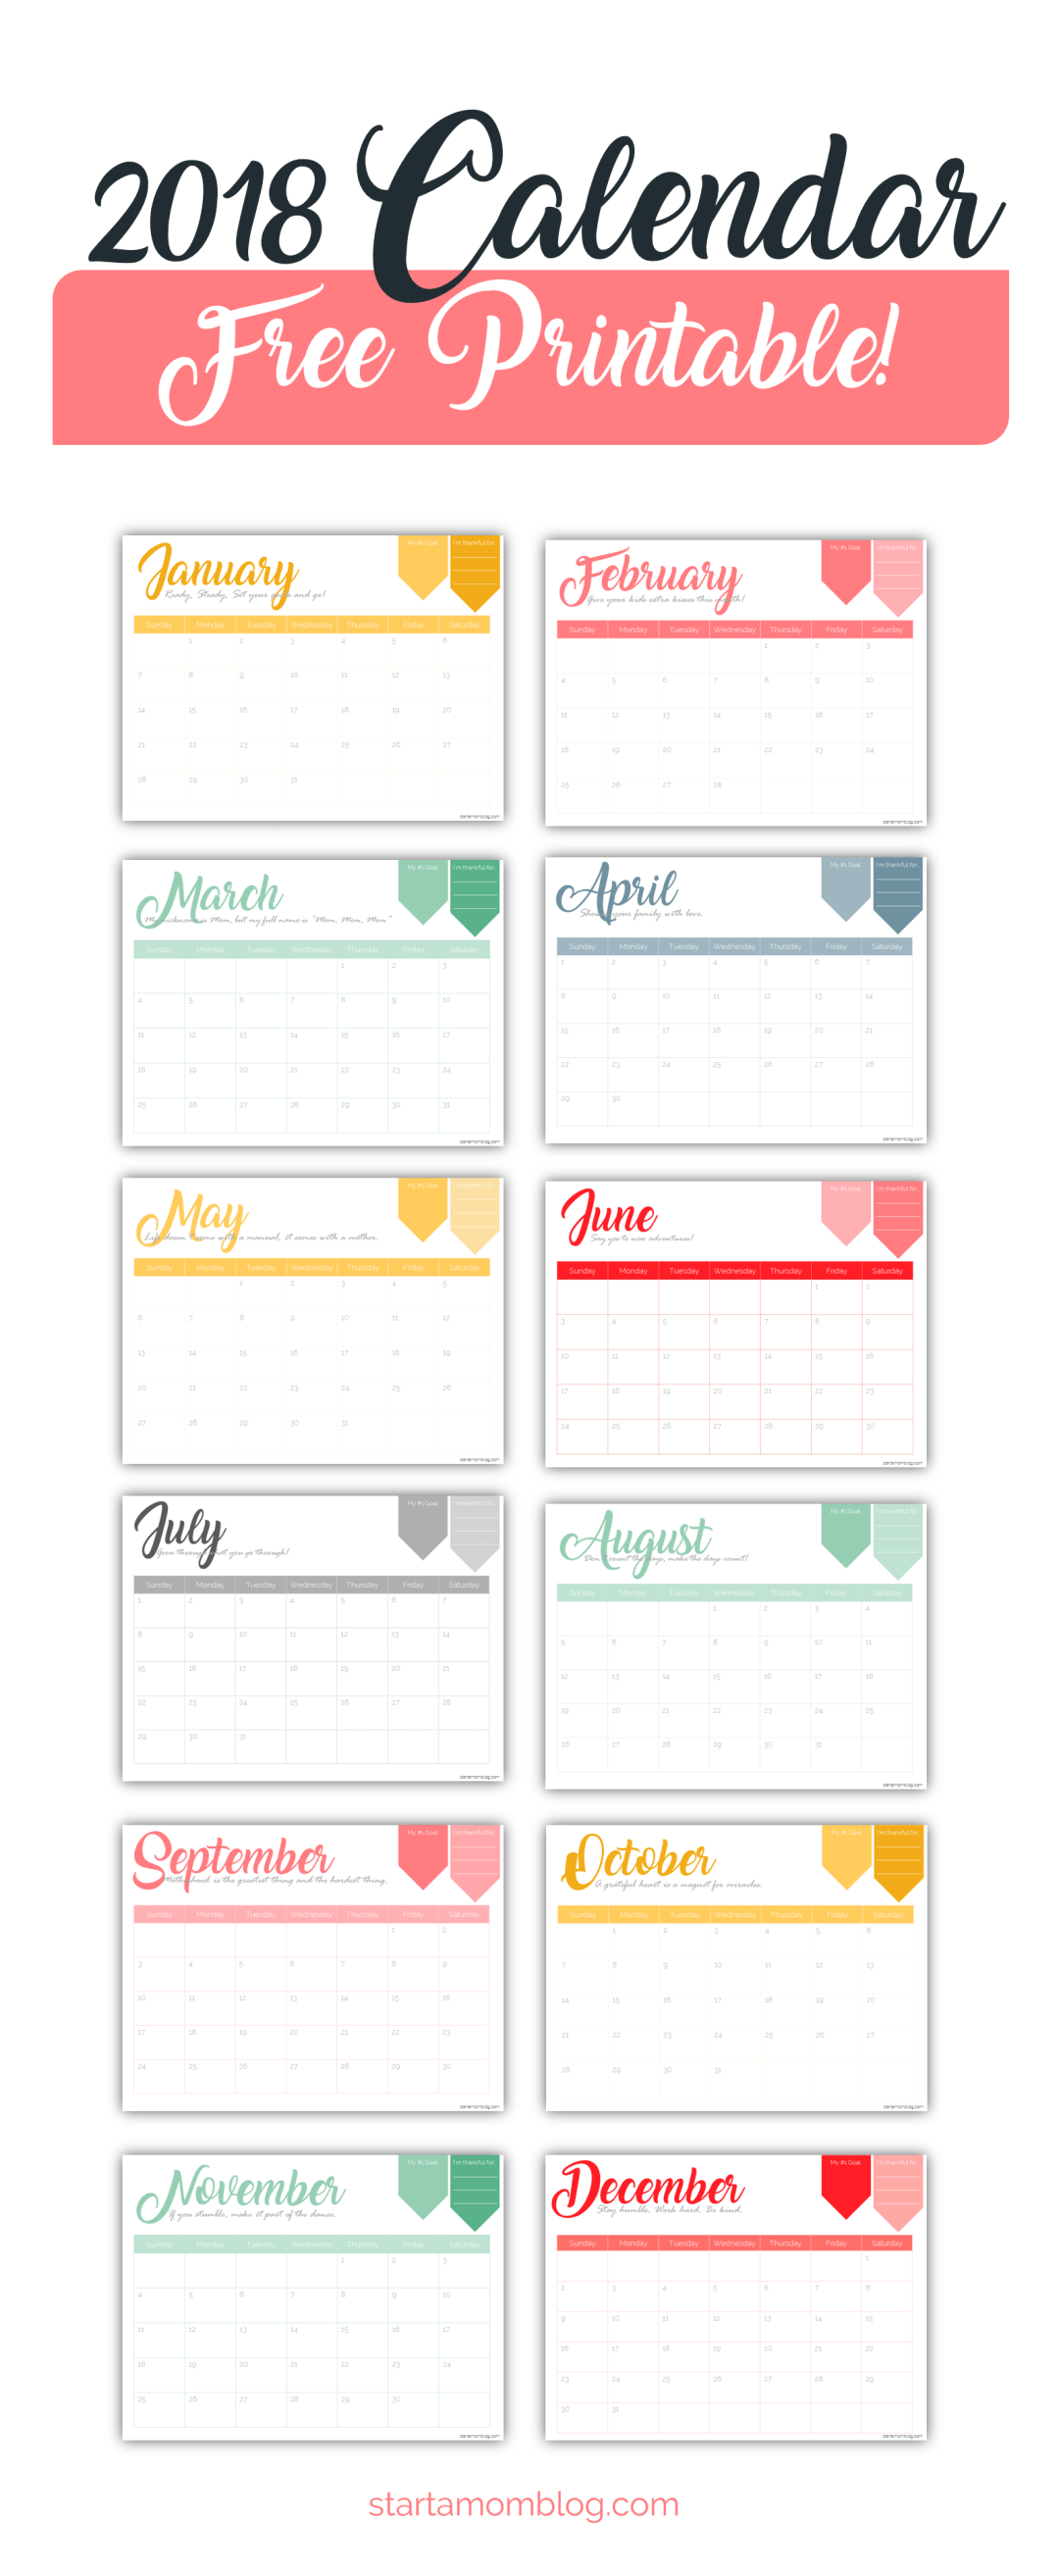 2018 Calendar Inspirational : Free calendar printable with inspirational quotes for